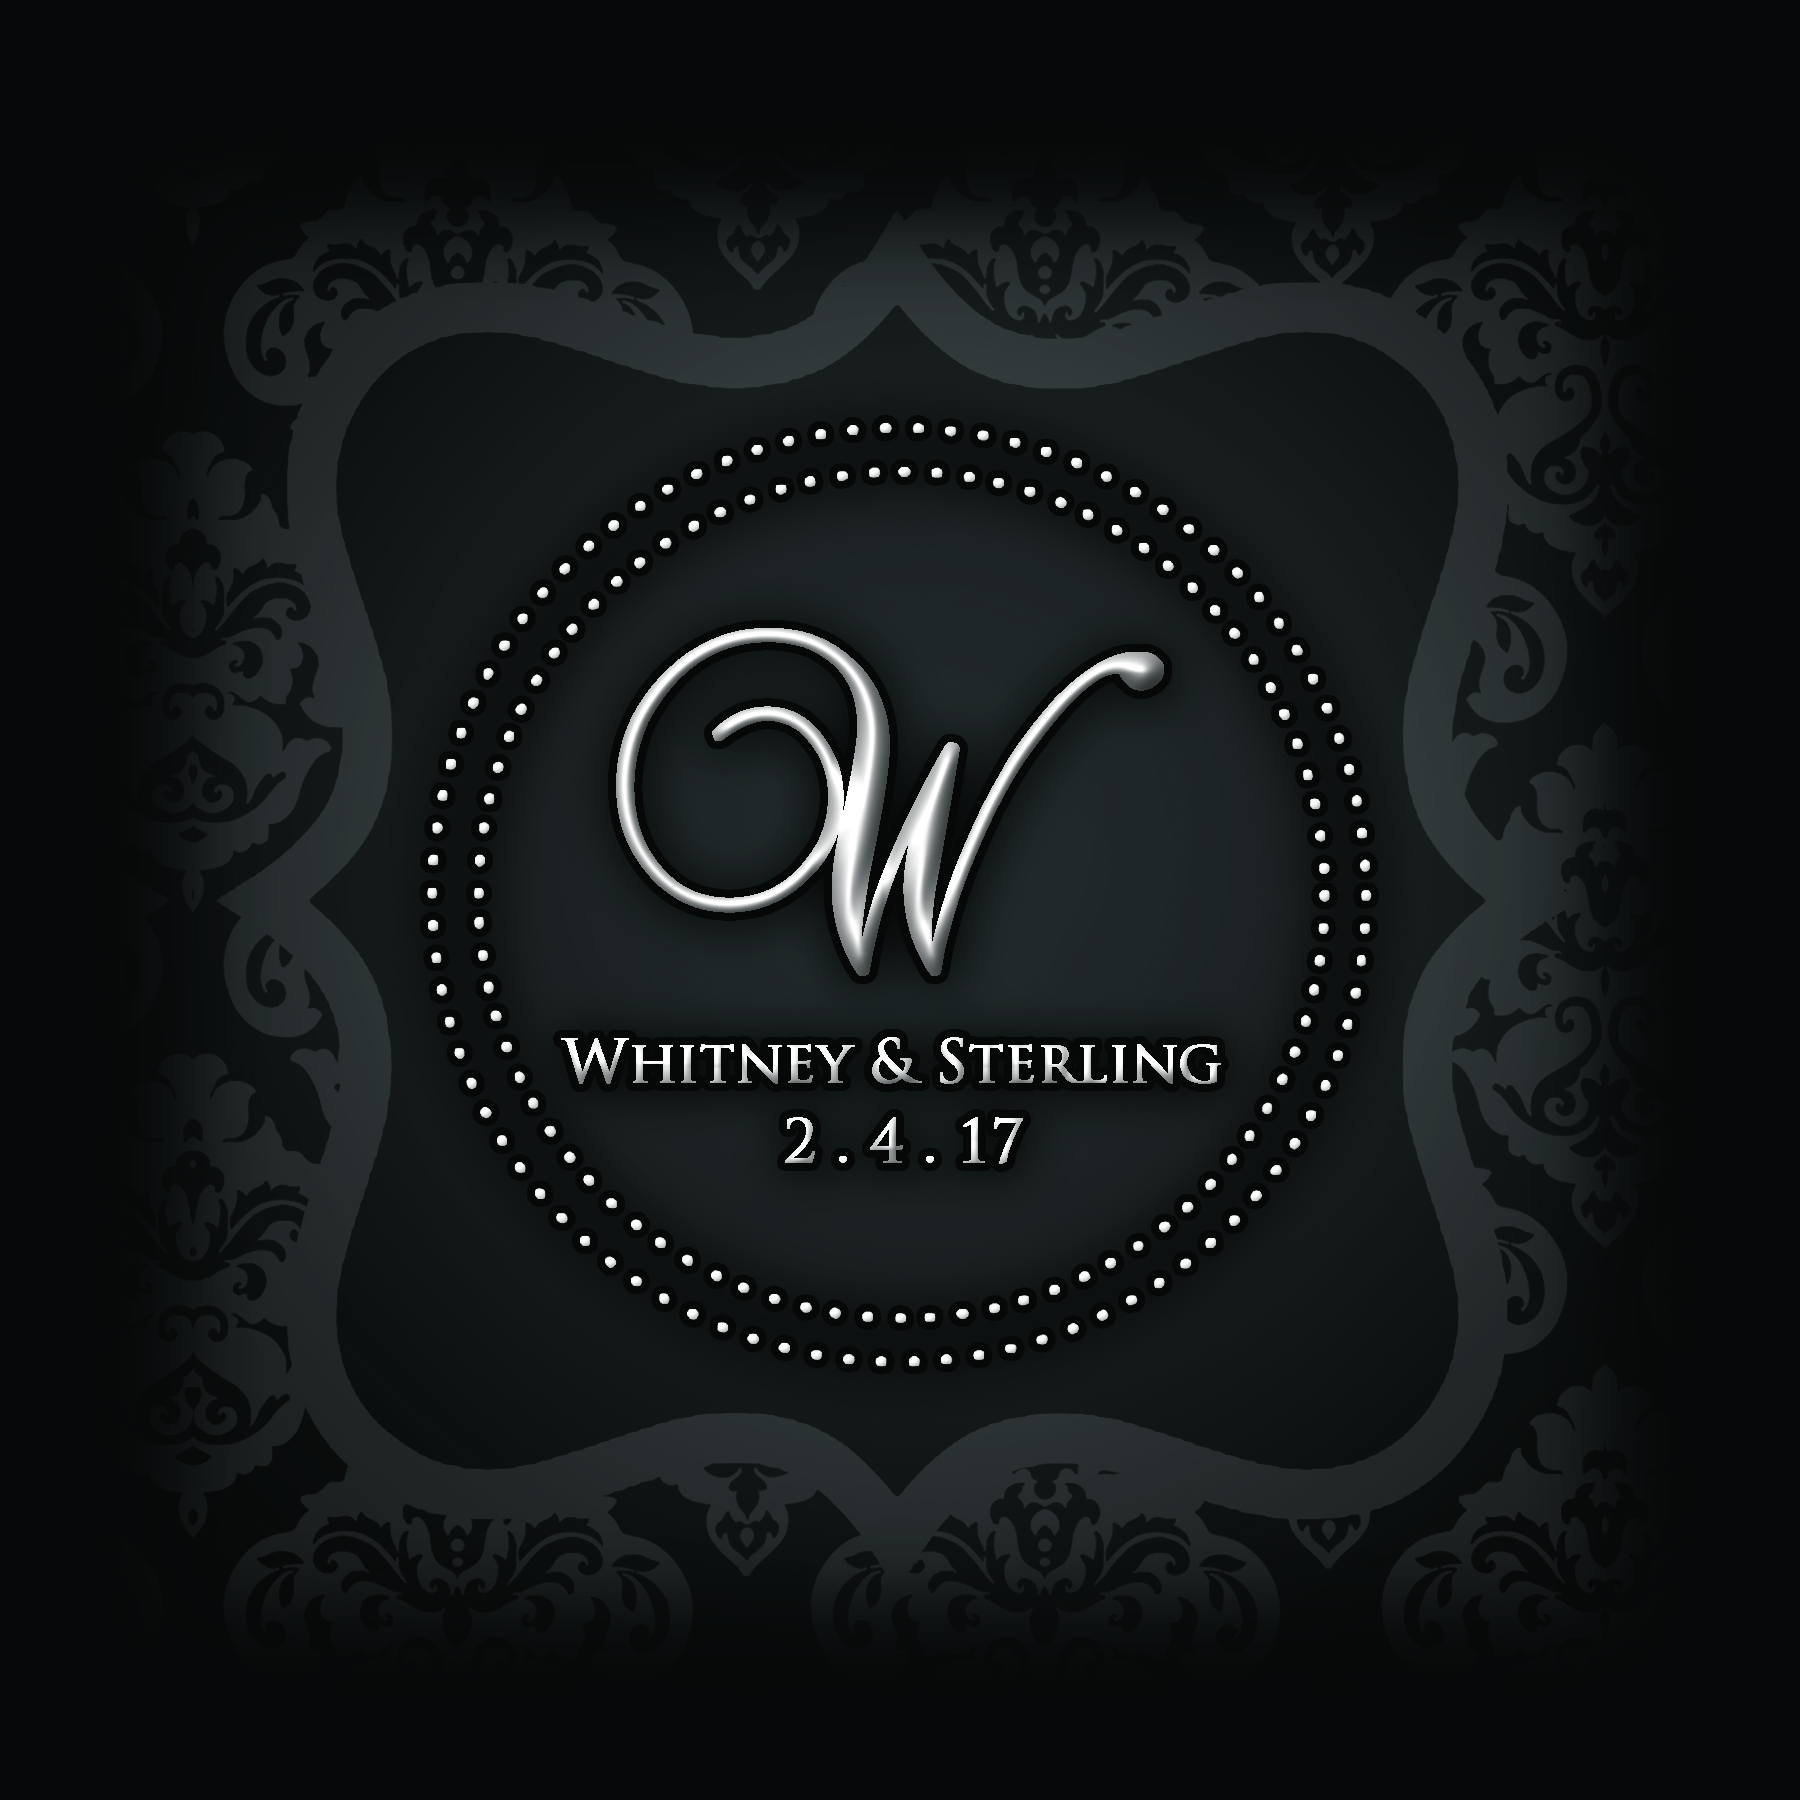 WHITNEYandSTERLING5monogram.jpg